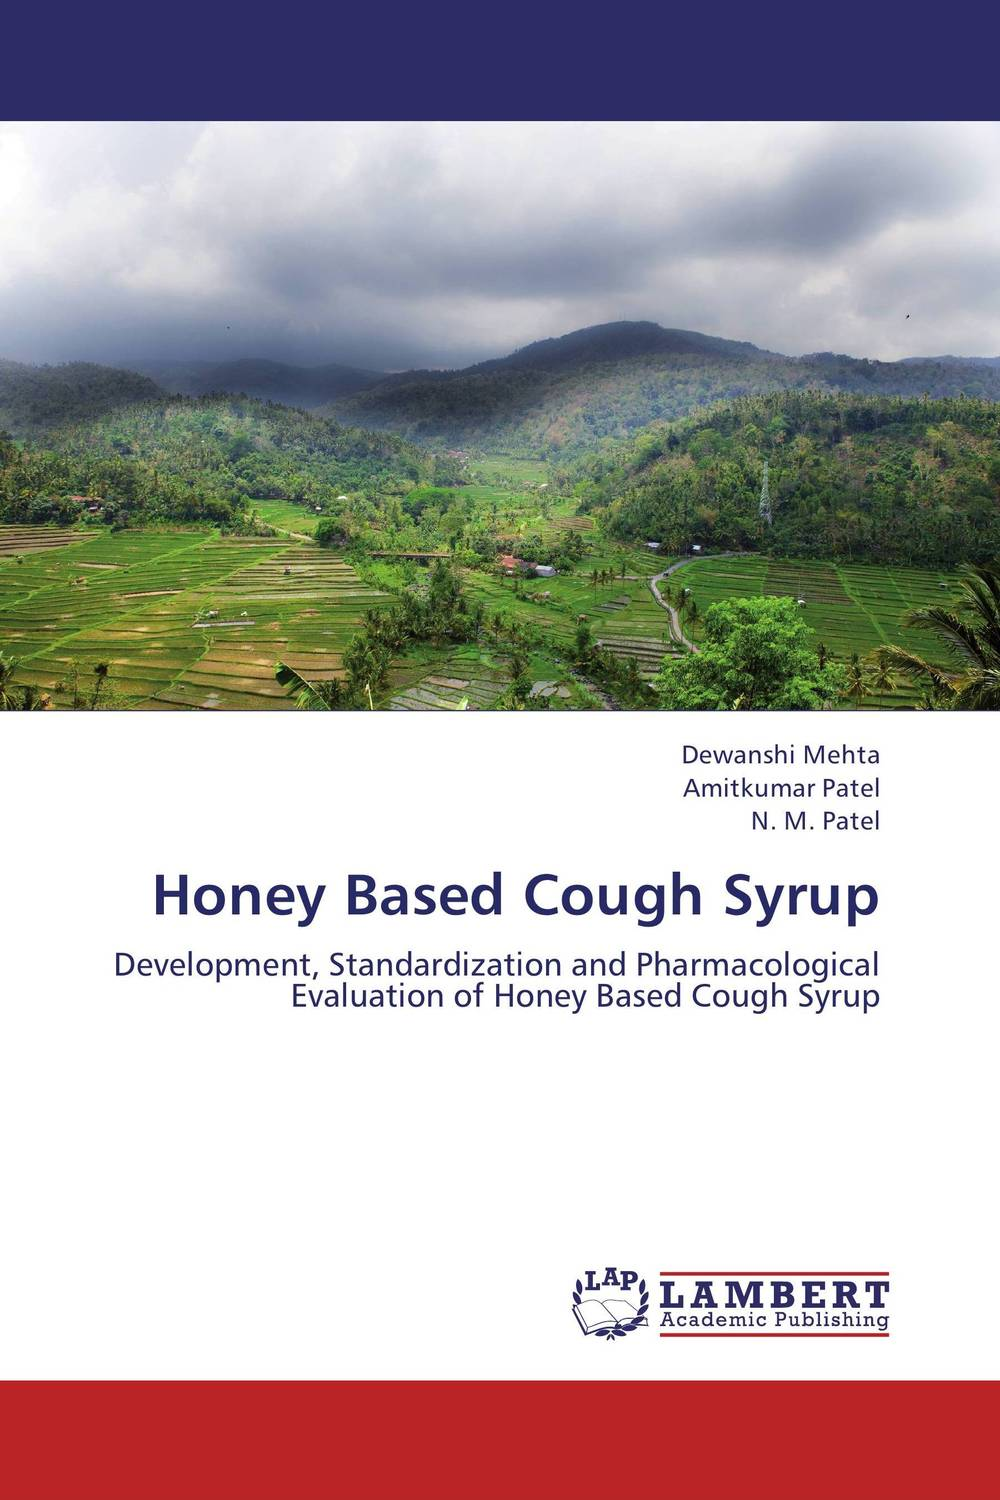 Honey Based Cough Syrup